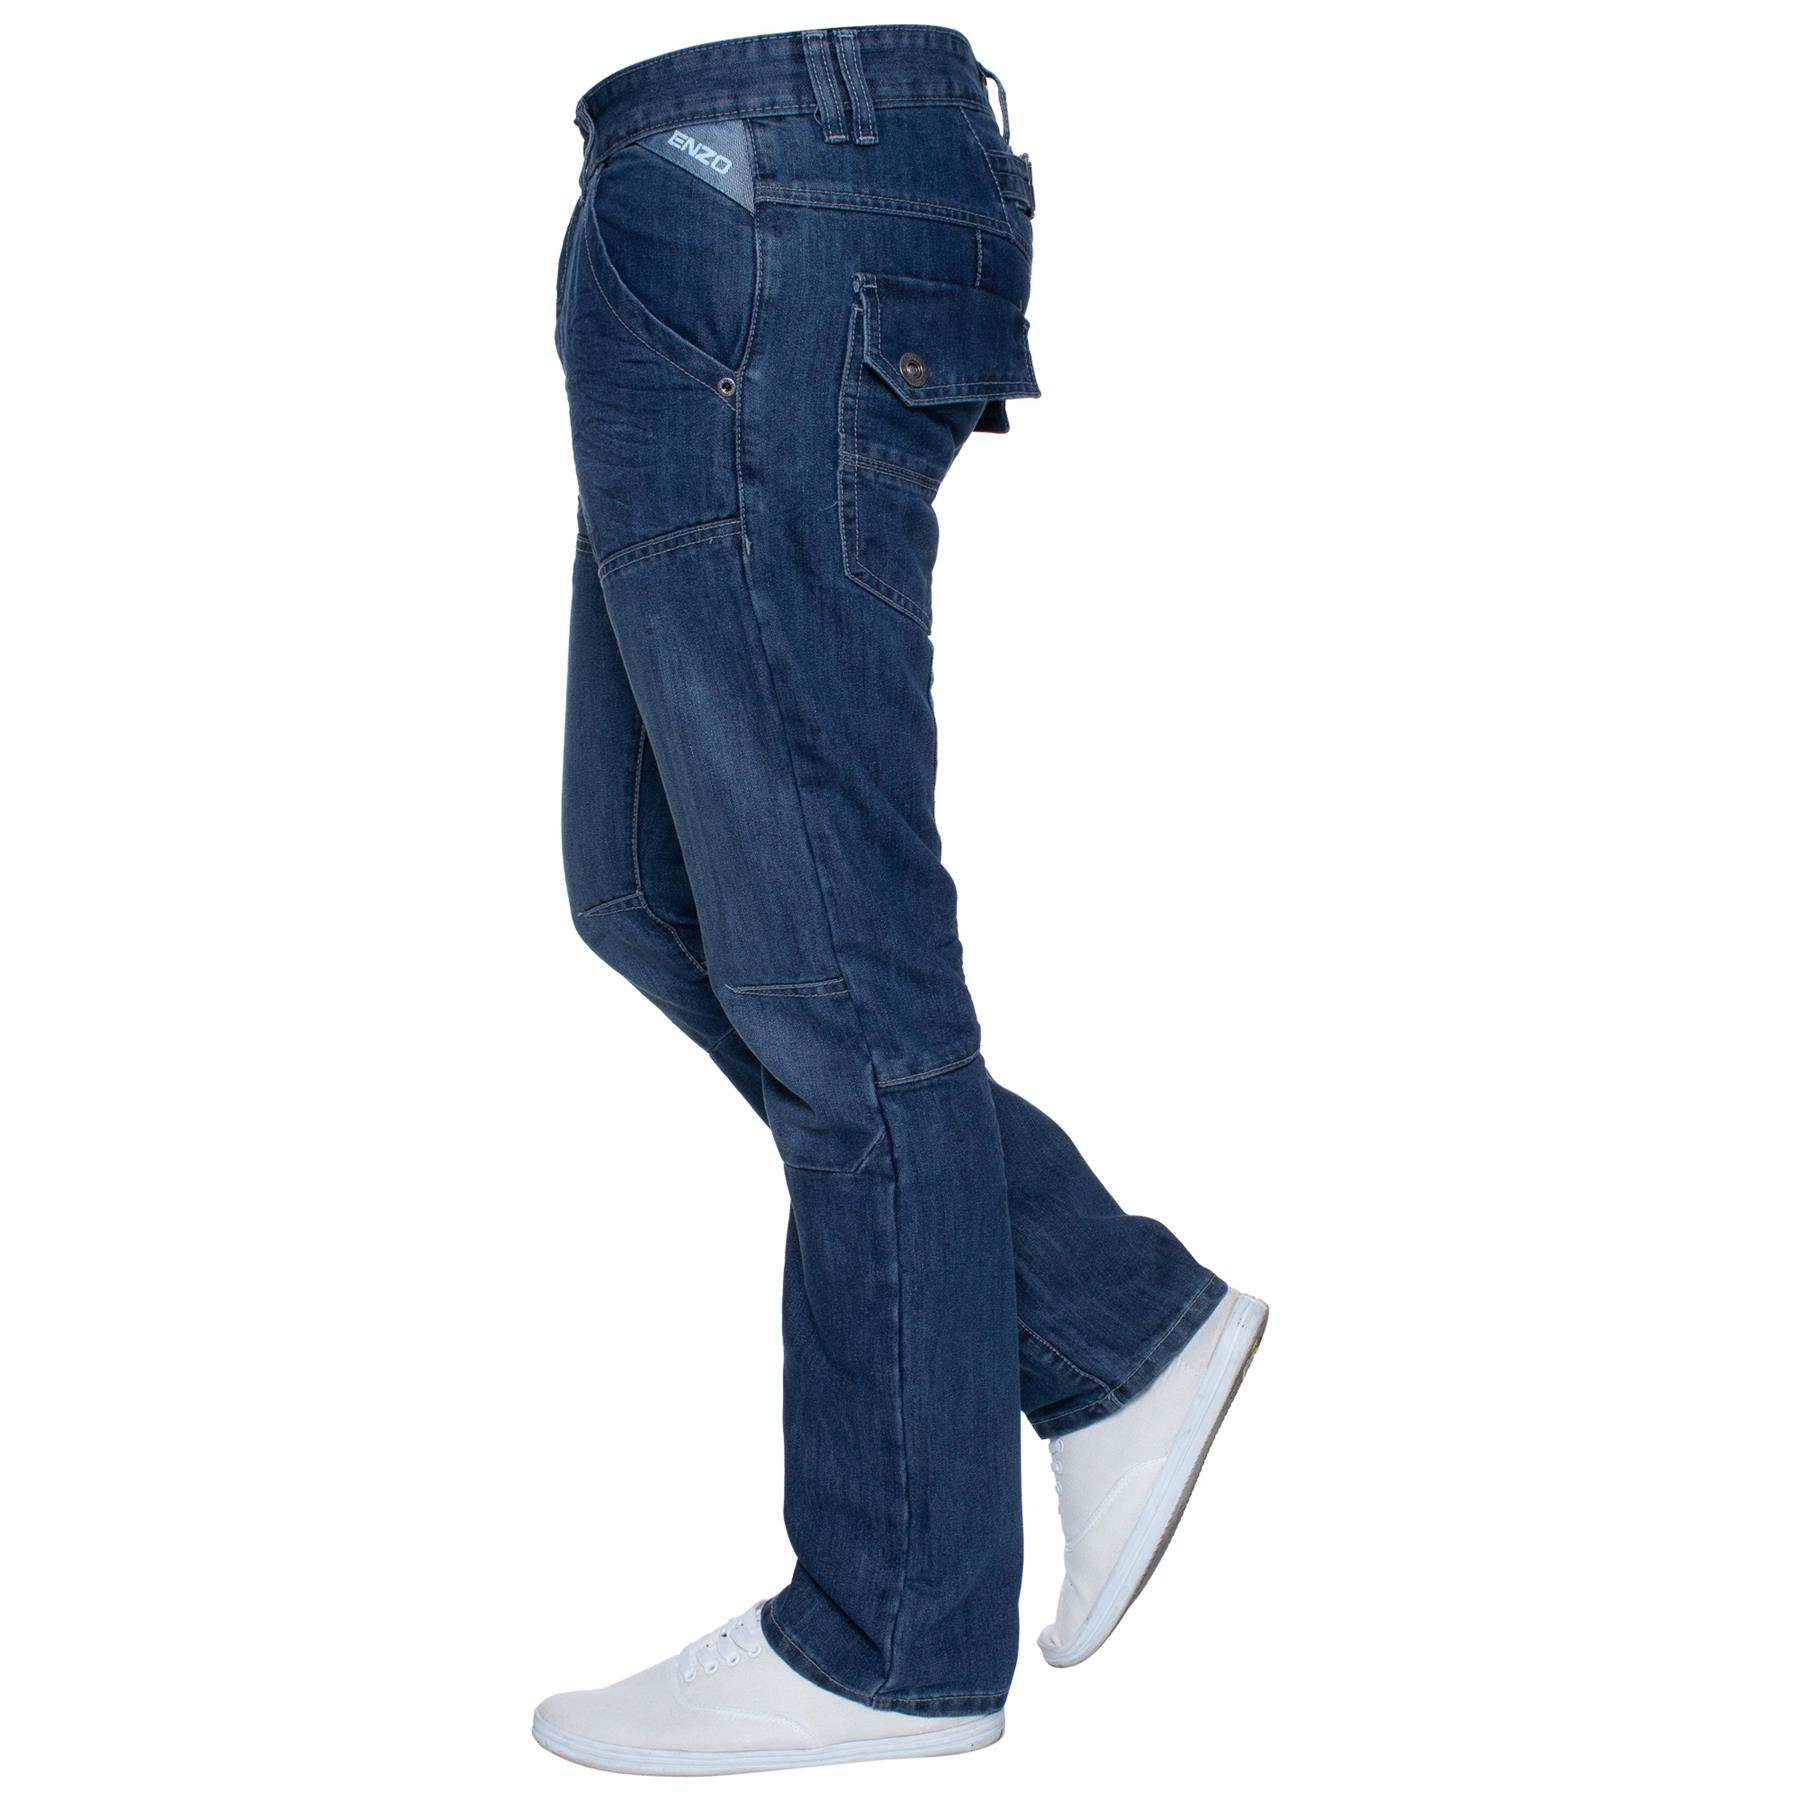 Enzo-Mens-Jeans-Big-Tall-Leg-King-Size-Denim-Pants-Chino-Trousers-Waist-44-034-60-034 miniature 99